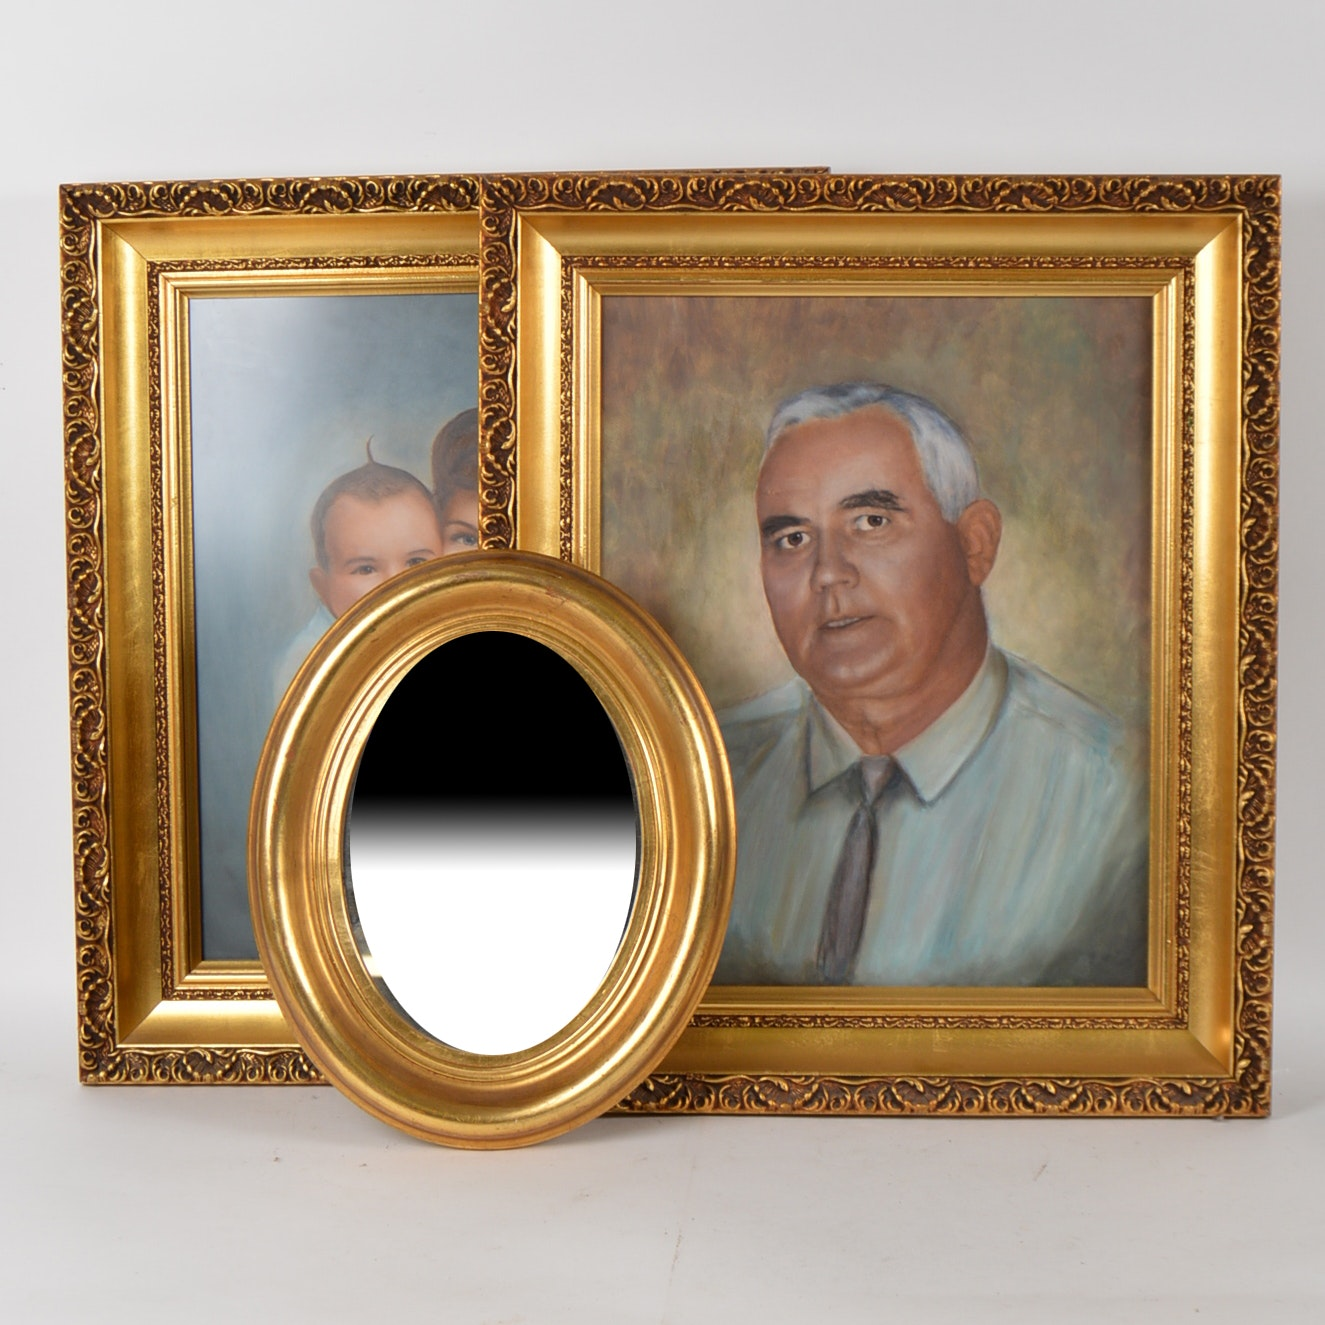 Vintage Gilt Framed Paintings and Oval Wall Mirror